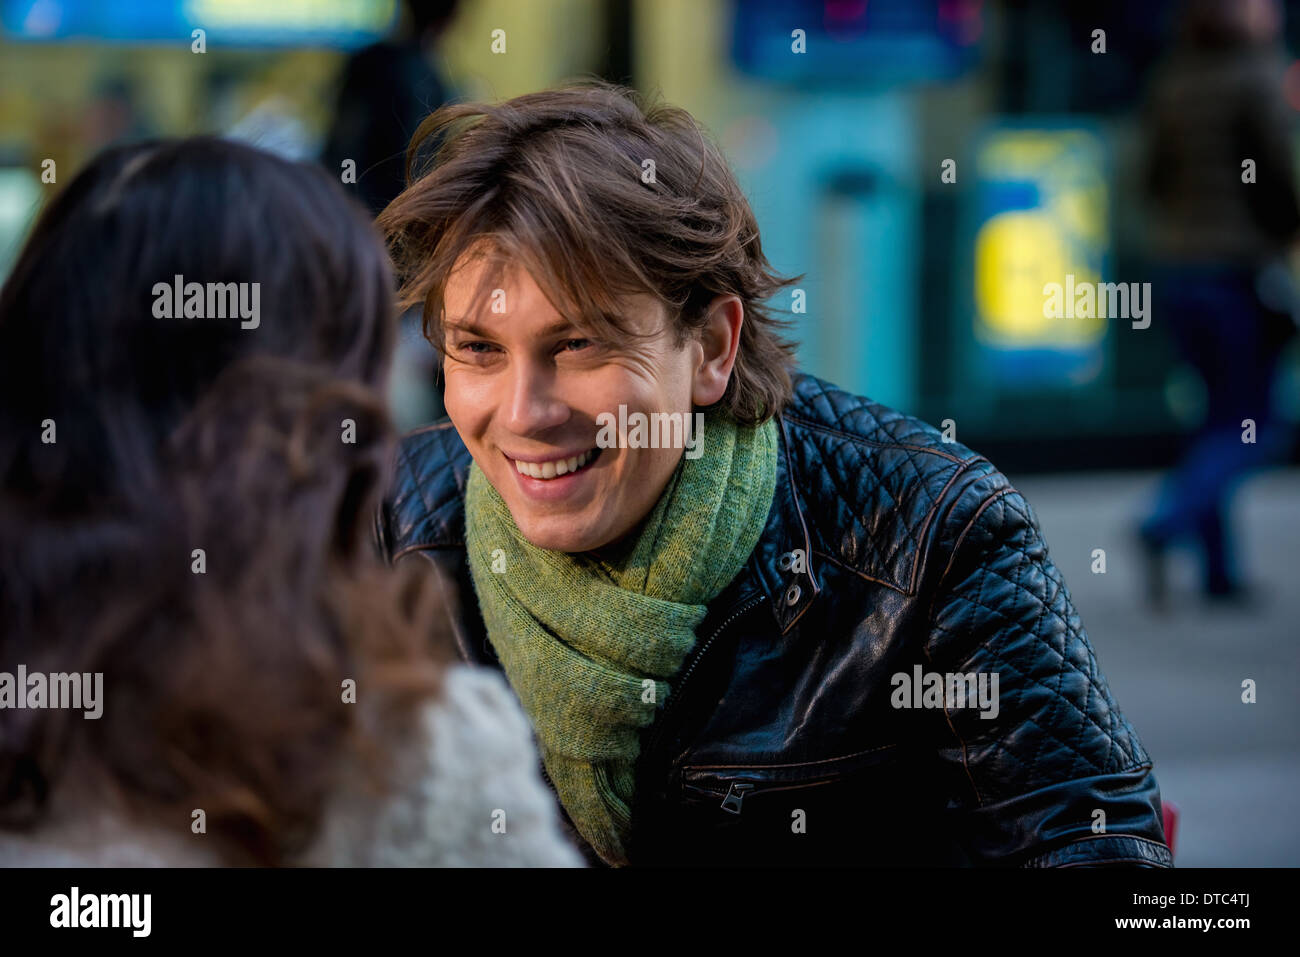 Young couple at sidewalk cafe, New York City, USA - Stock Image